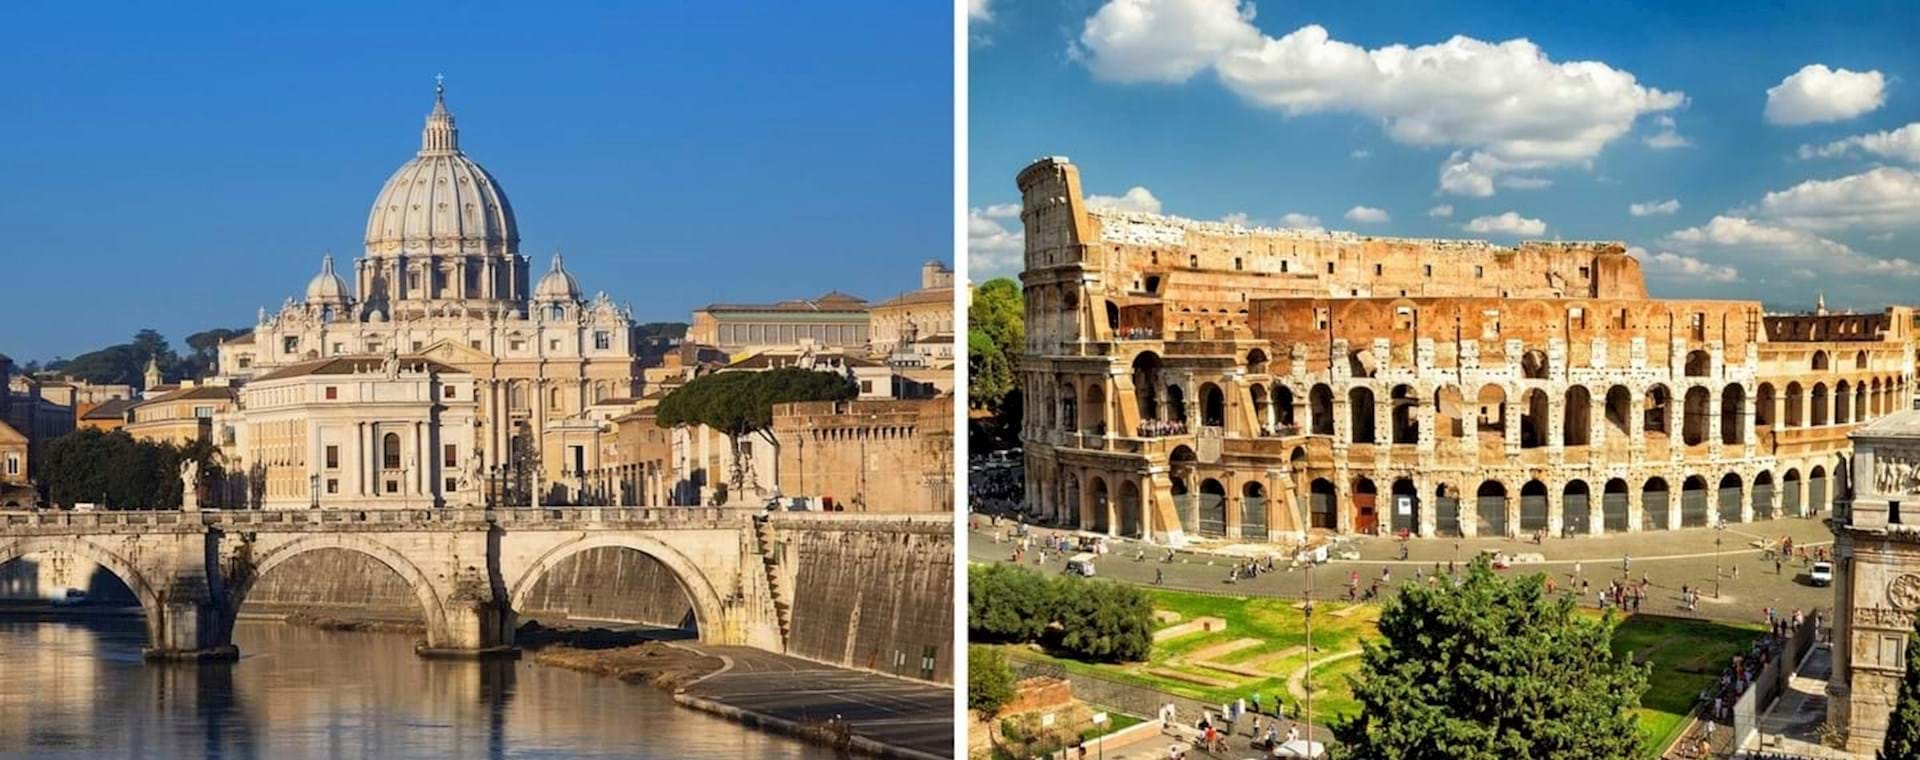 Full-Day Combo: Complete Vatican Museums & Colosseum Tour